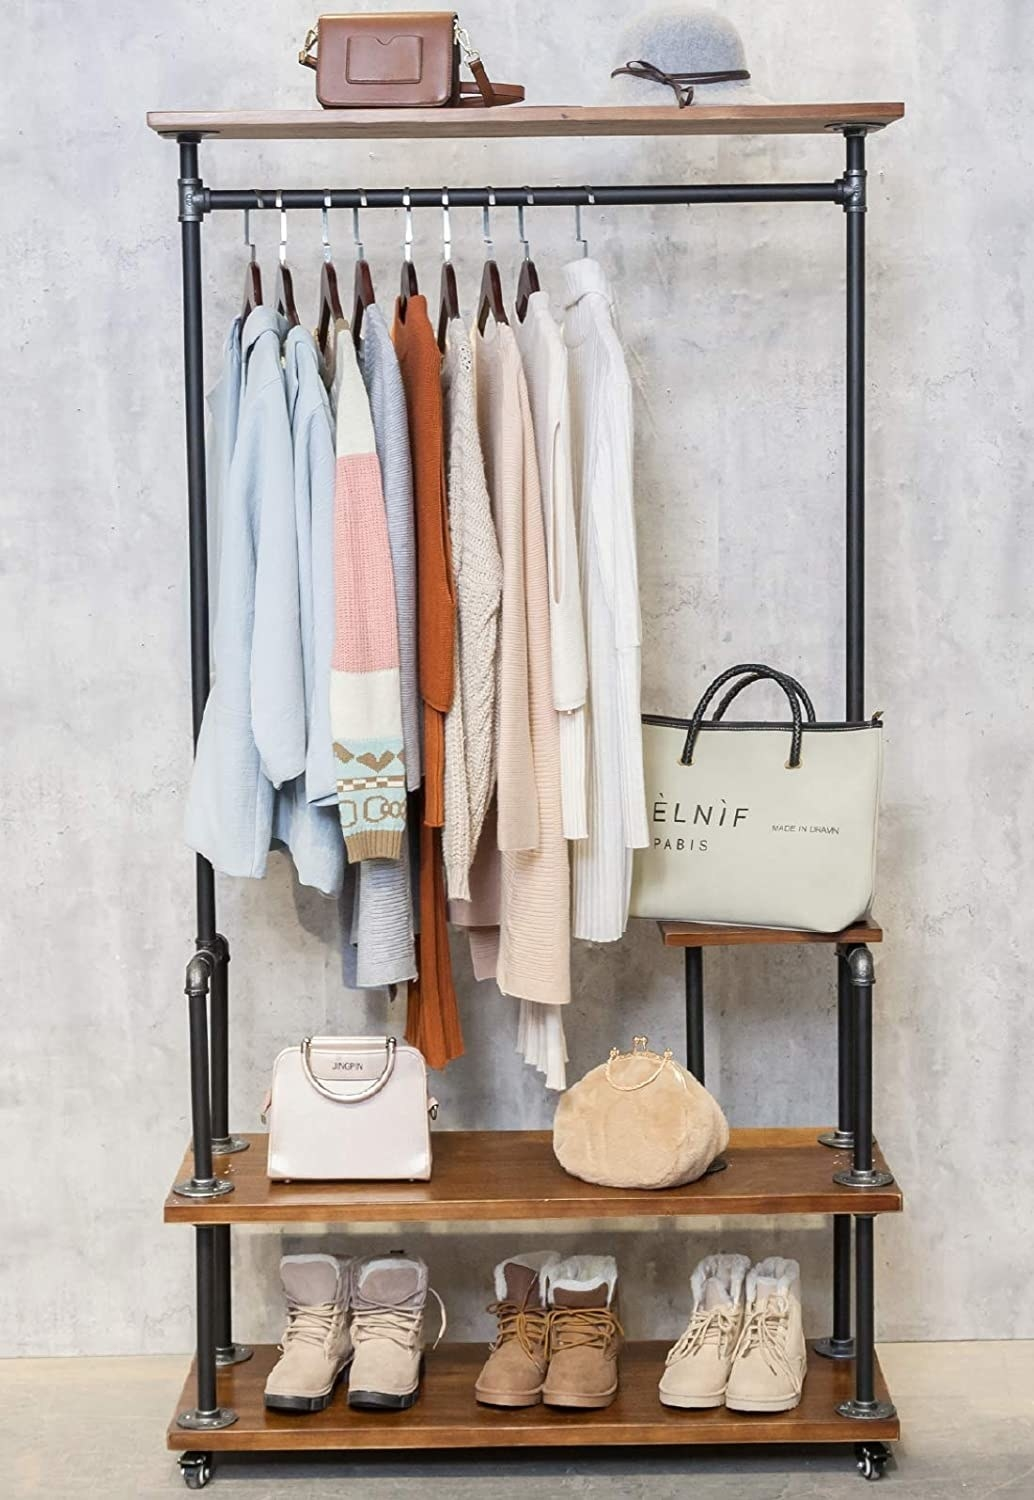 The garment rack with clothes on it and two wood shelves at the bottom with shoes and accessories and a shelf at the top with other accessories on it.